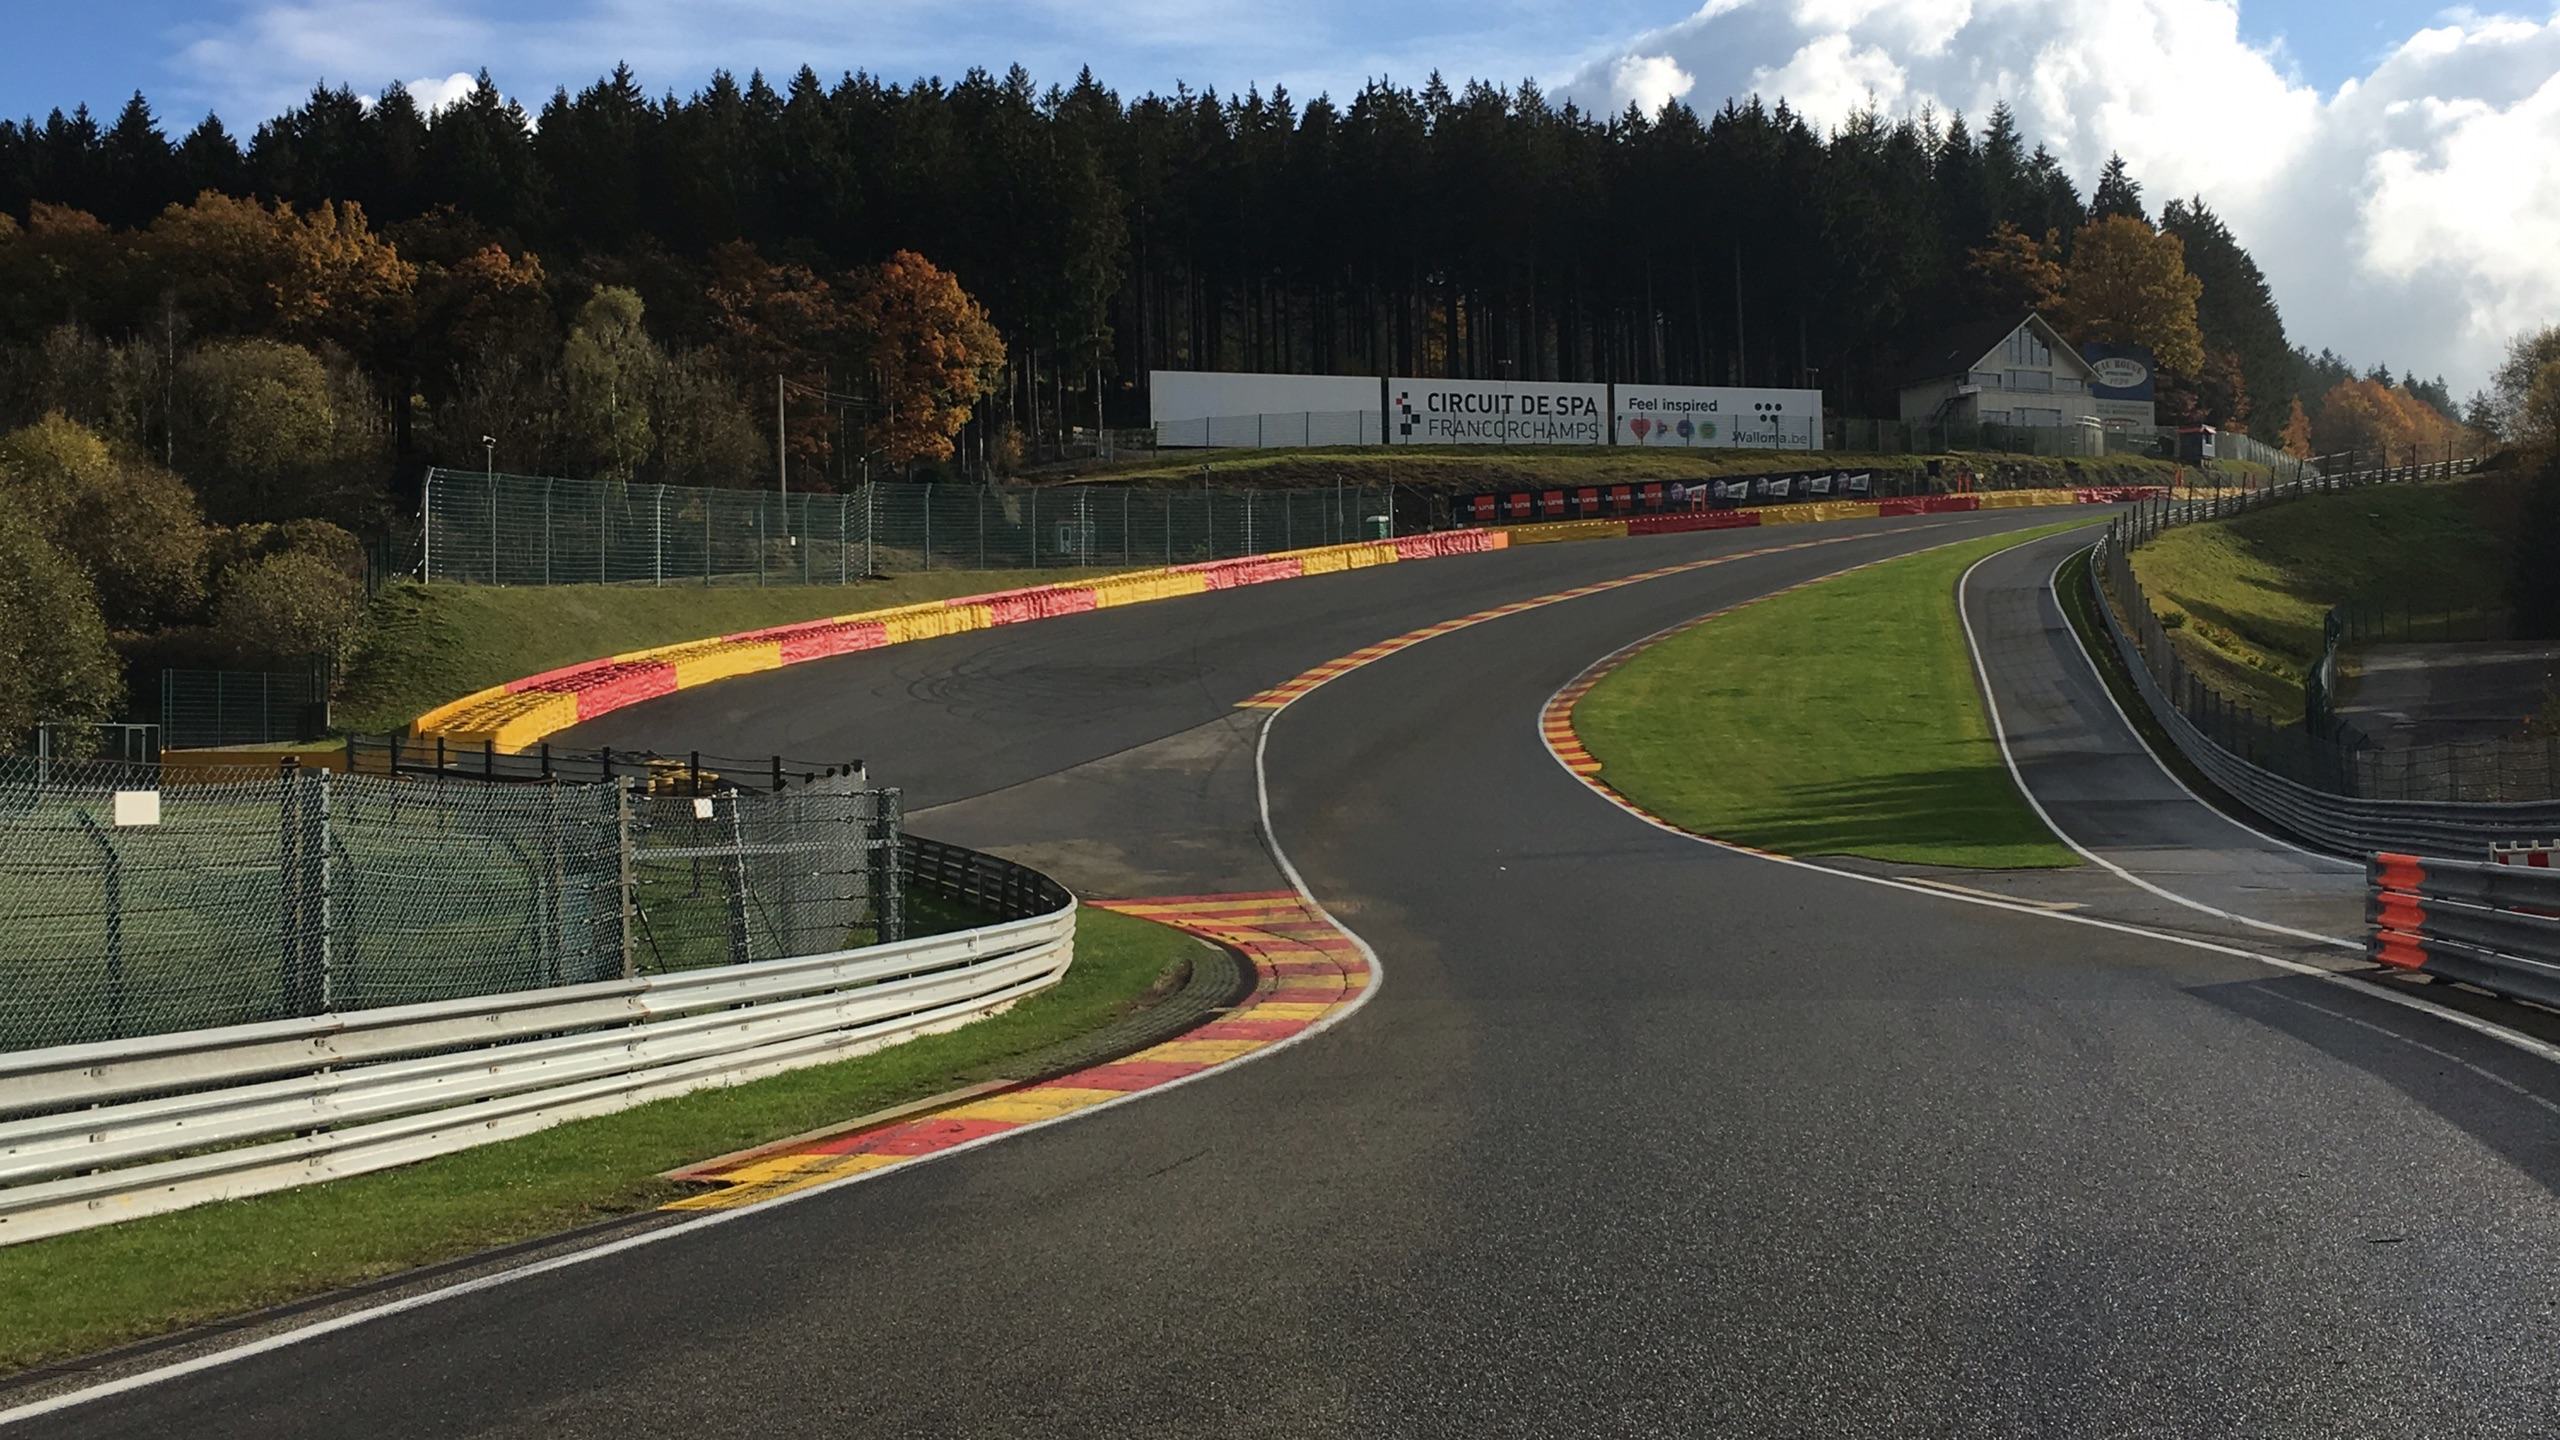 STATEMENT FROM SRO MOTORSPORTS GROUP, RACB AND CIRCUIT OF SPA-FRANCORCHAMPS